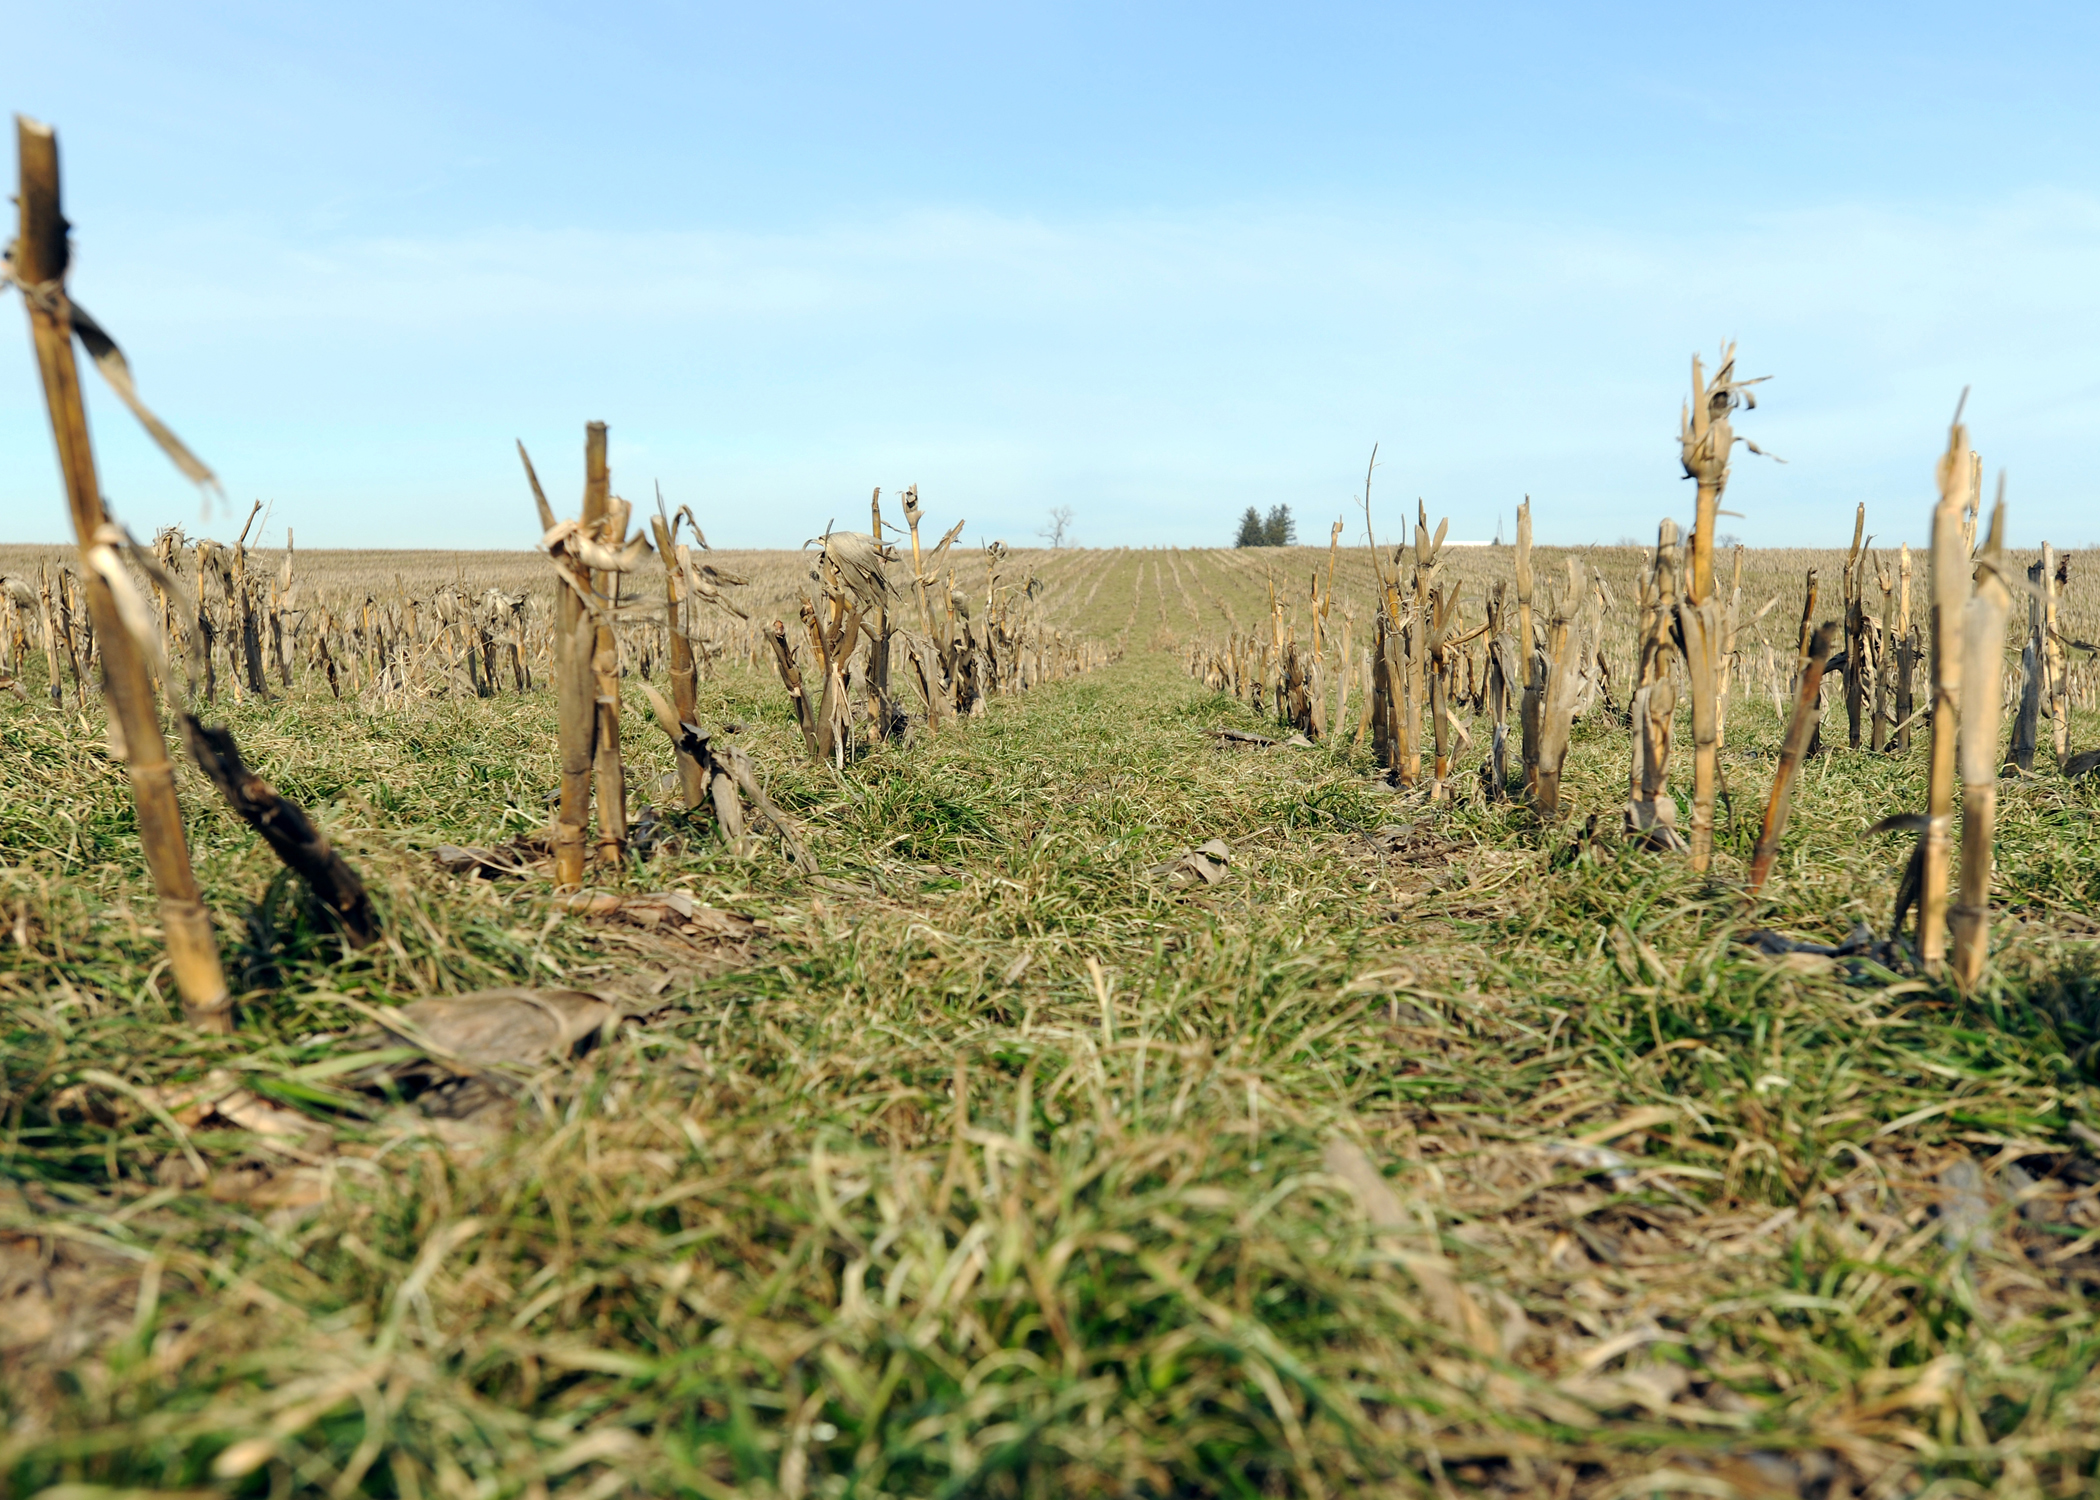 Cereal rye grows between rows of corn stubble on a farm in Tama County.